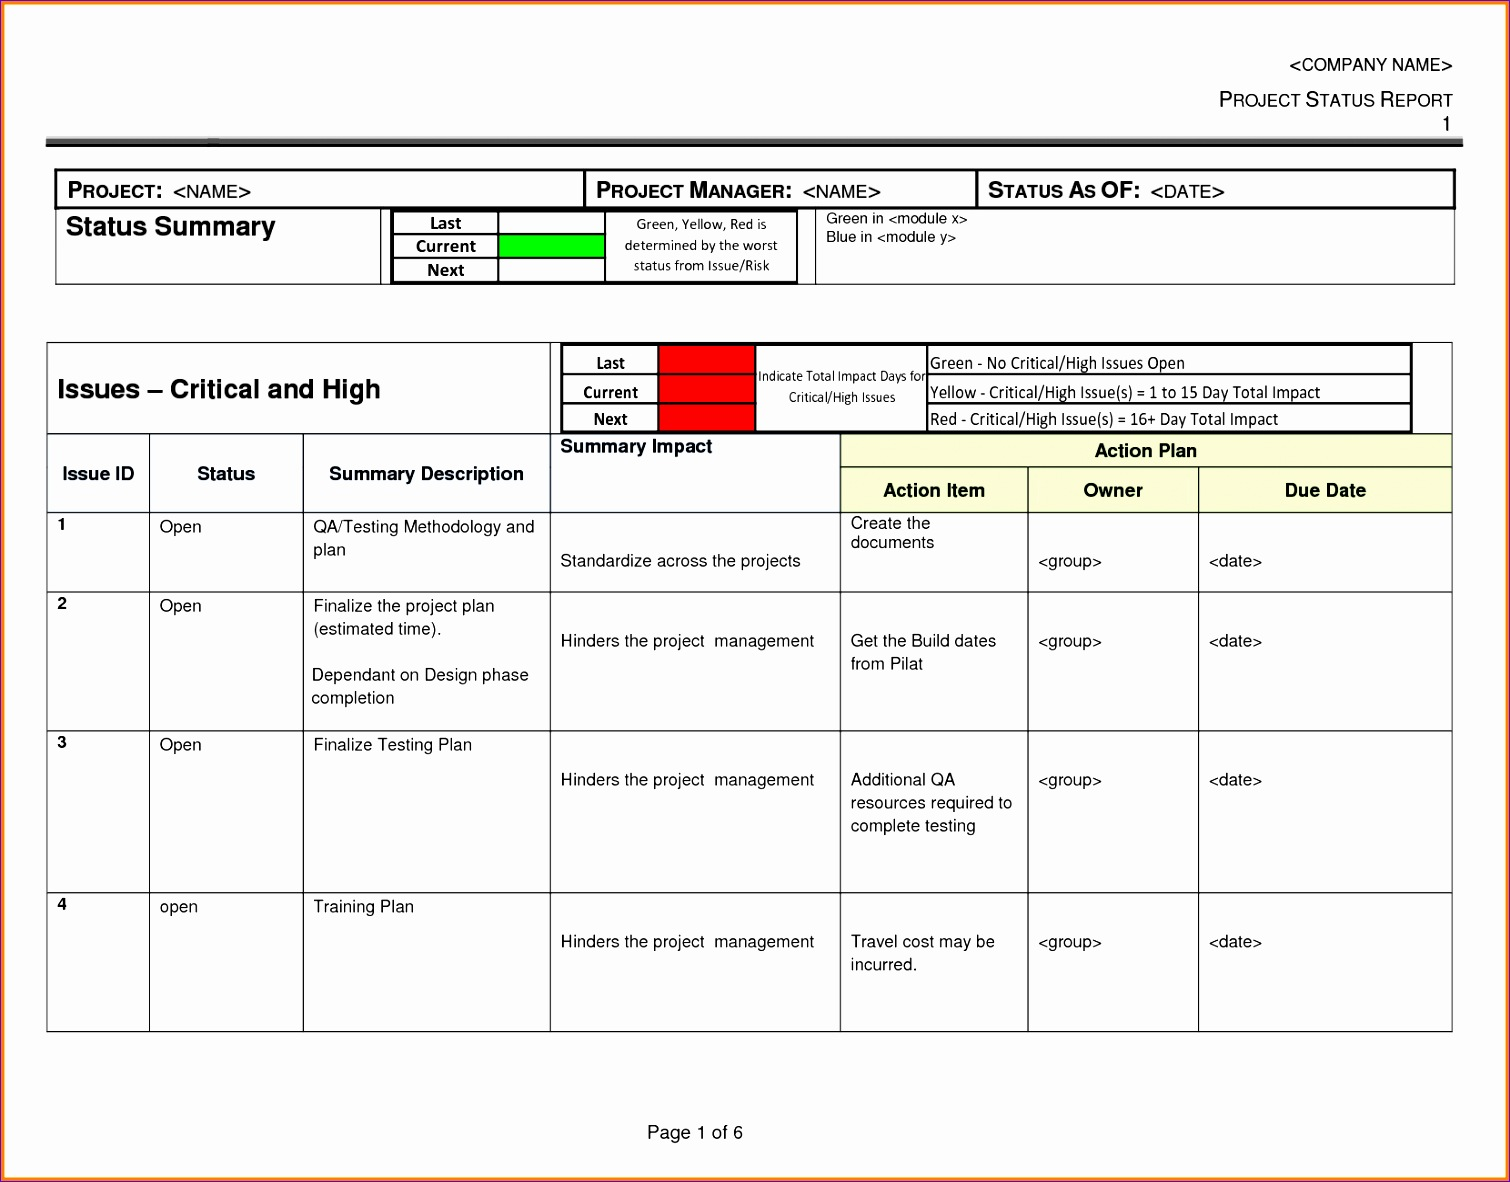 Project Reporting Template Excel Ehngl Luxury Project